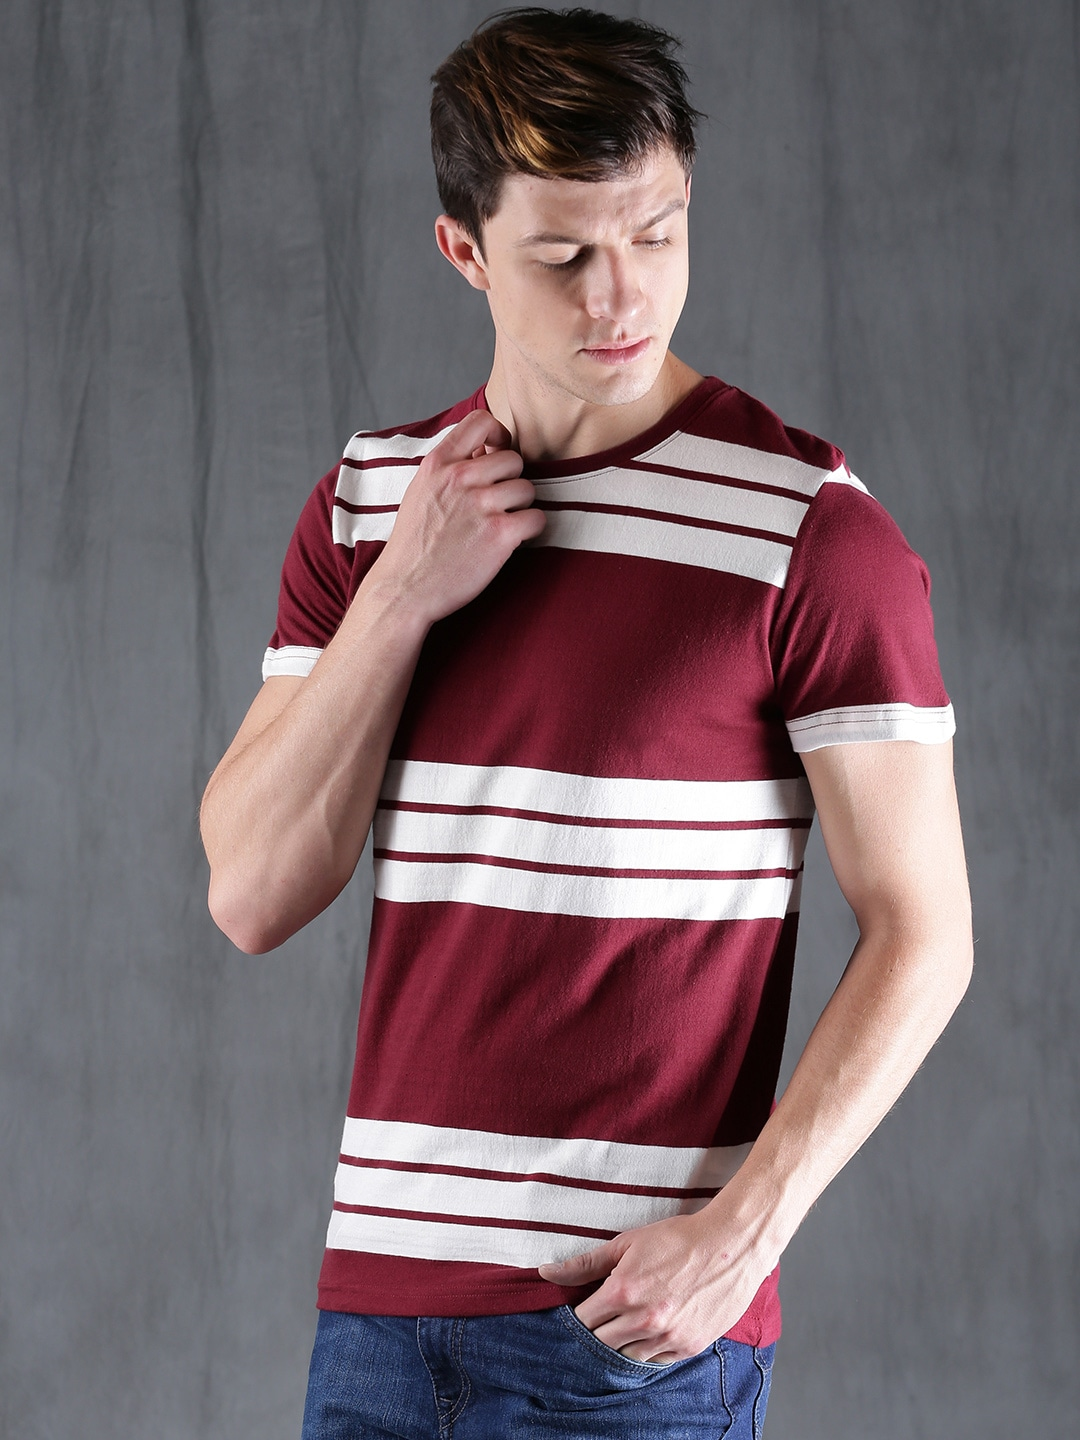 Buy WROGN Maroon & White Striped Men's T-shirt At Best Price